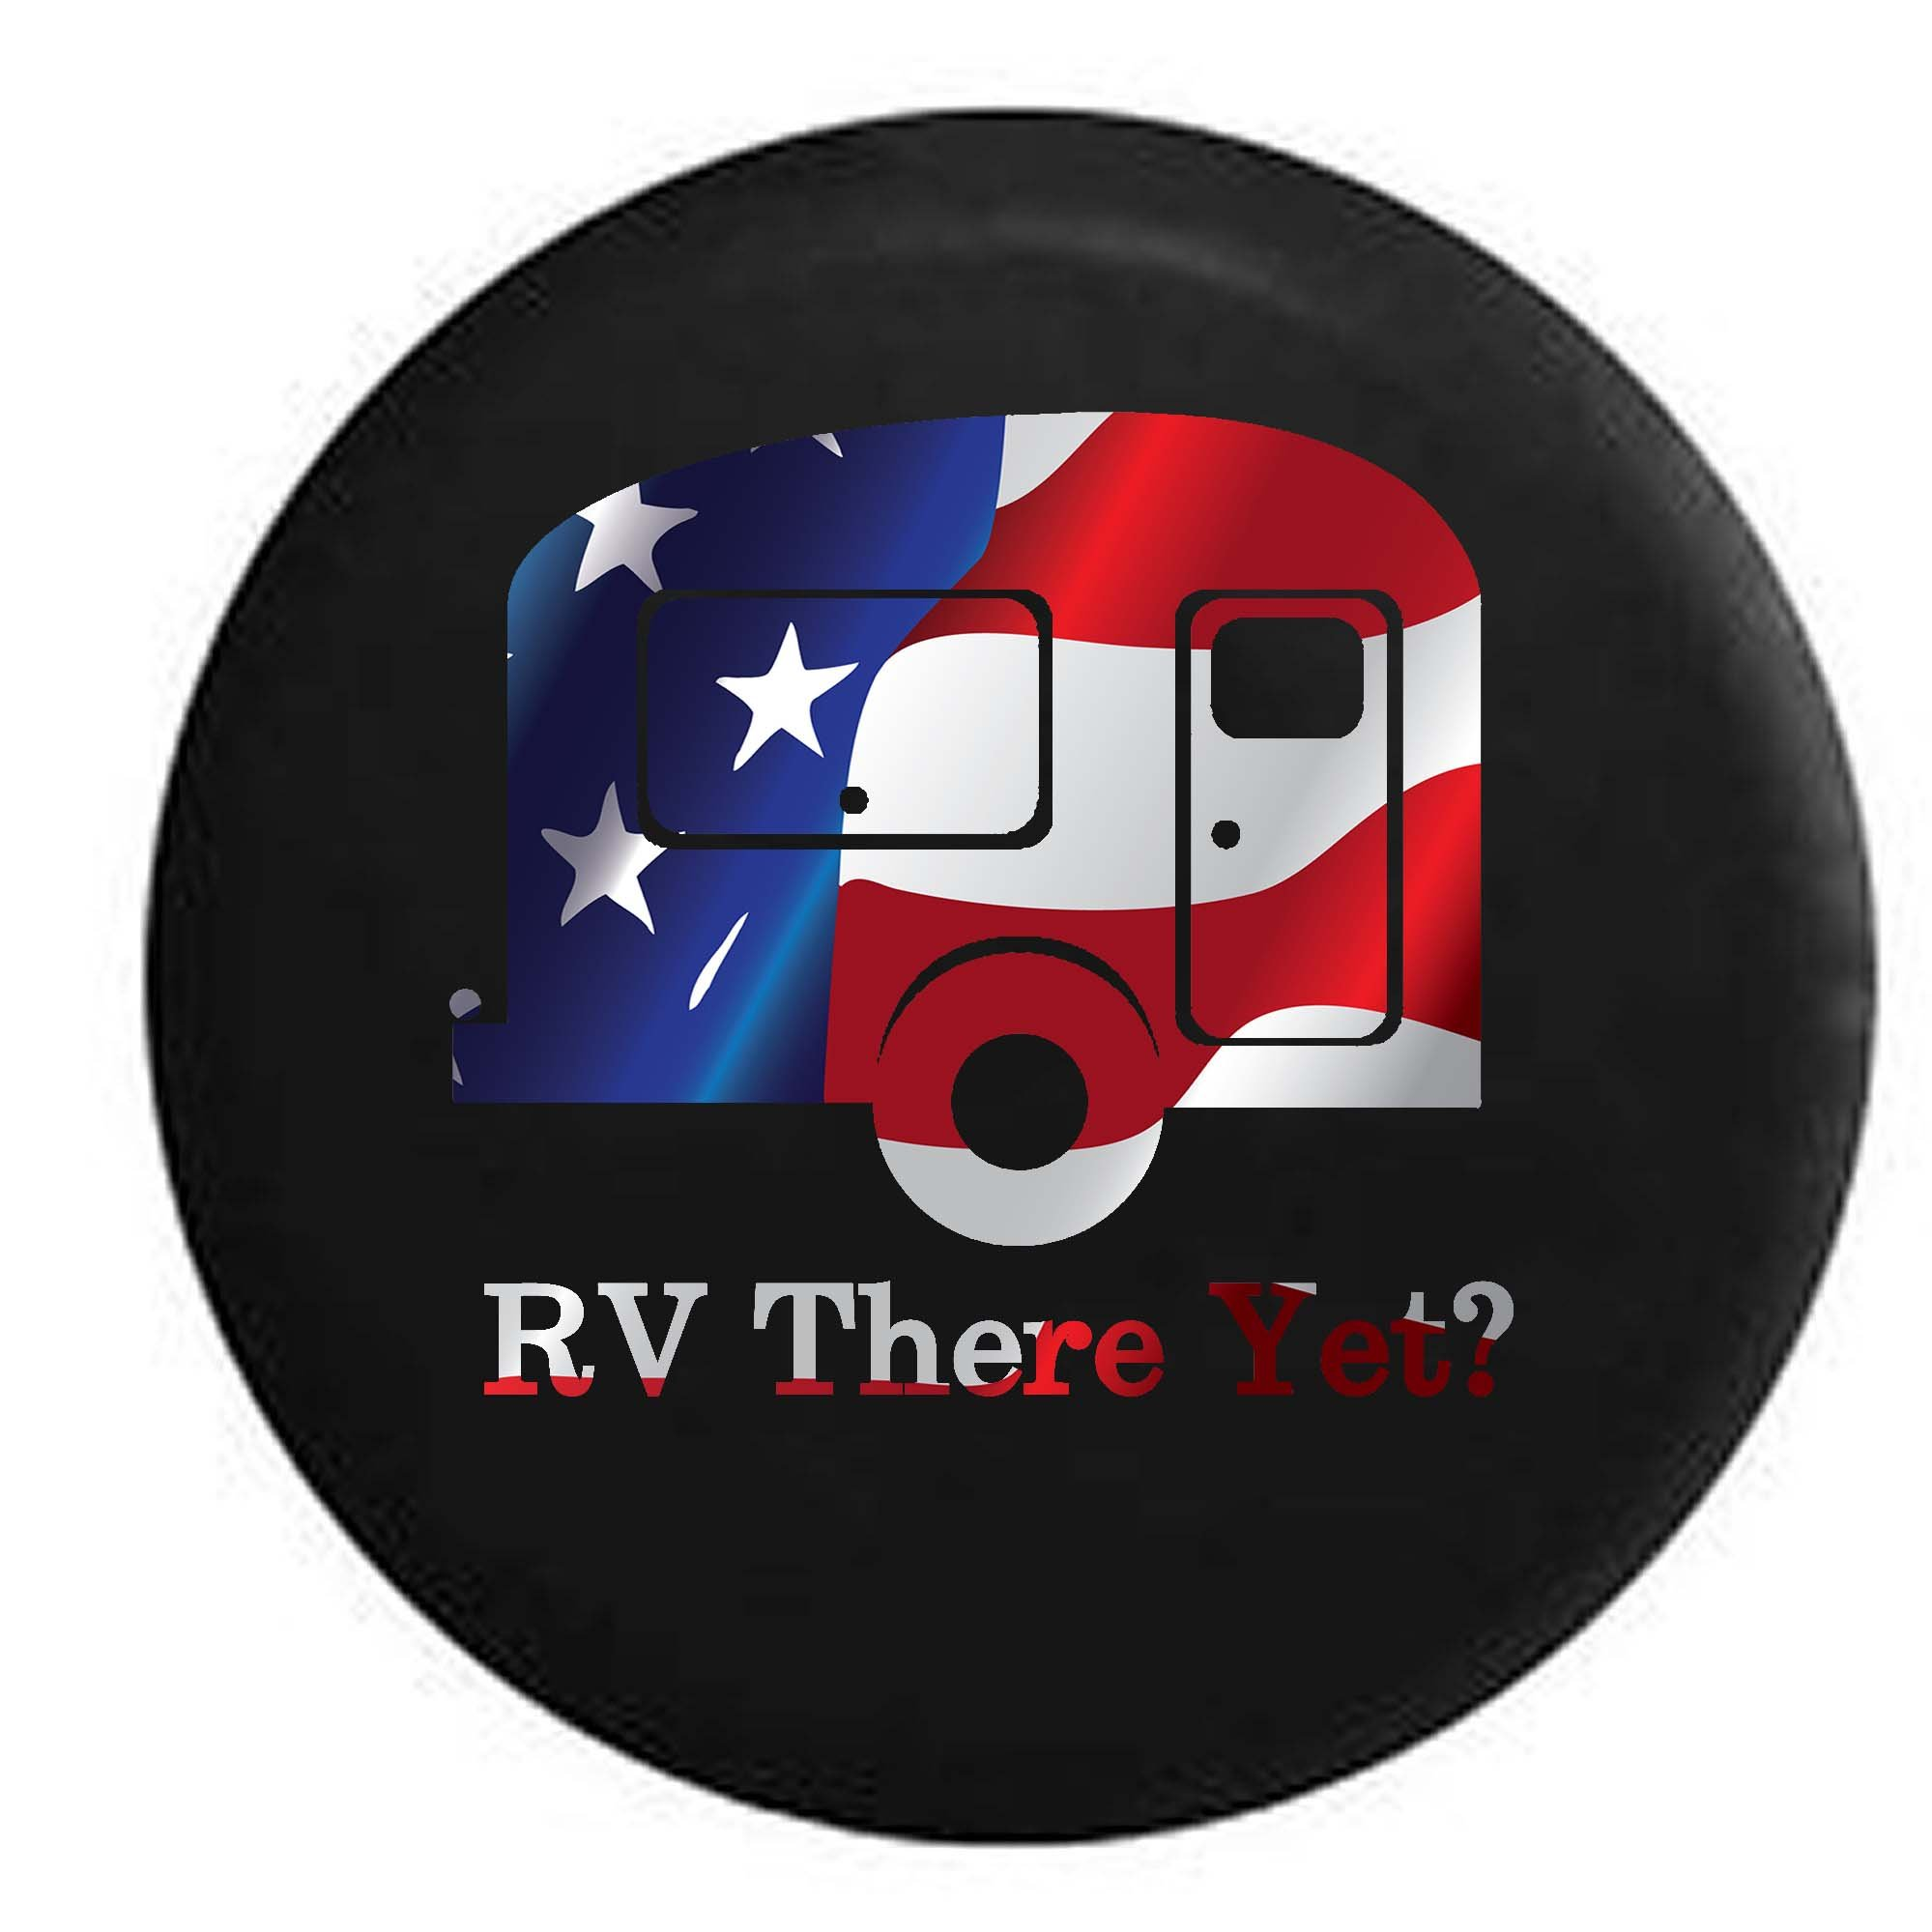 Pike Flag - RV There Yet? TravelCamper Trailer RV Spare Tire Cover OEM Vinyl Black 32 in by Pike Outdoors